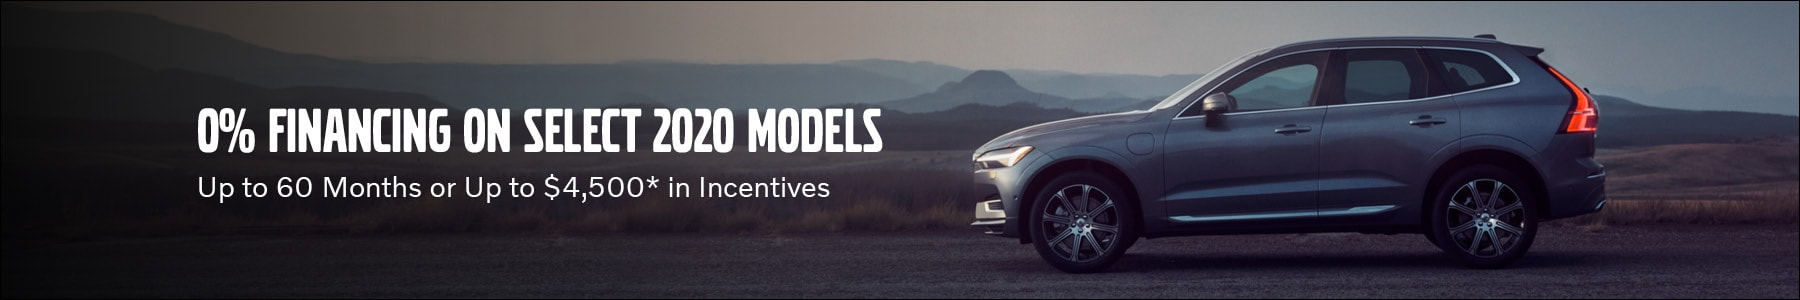 0% Financing on Select 2020 Models. Up to 60 Months or Up to $4,500* in Incentives.